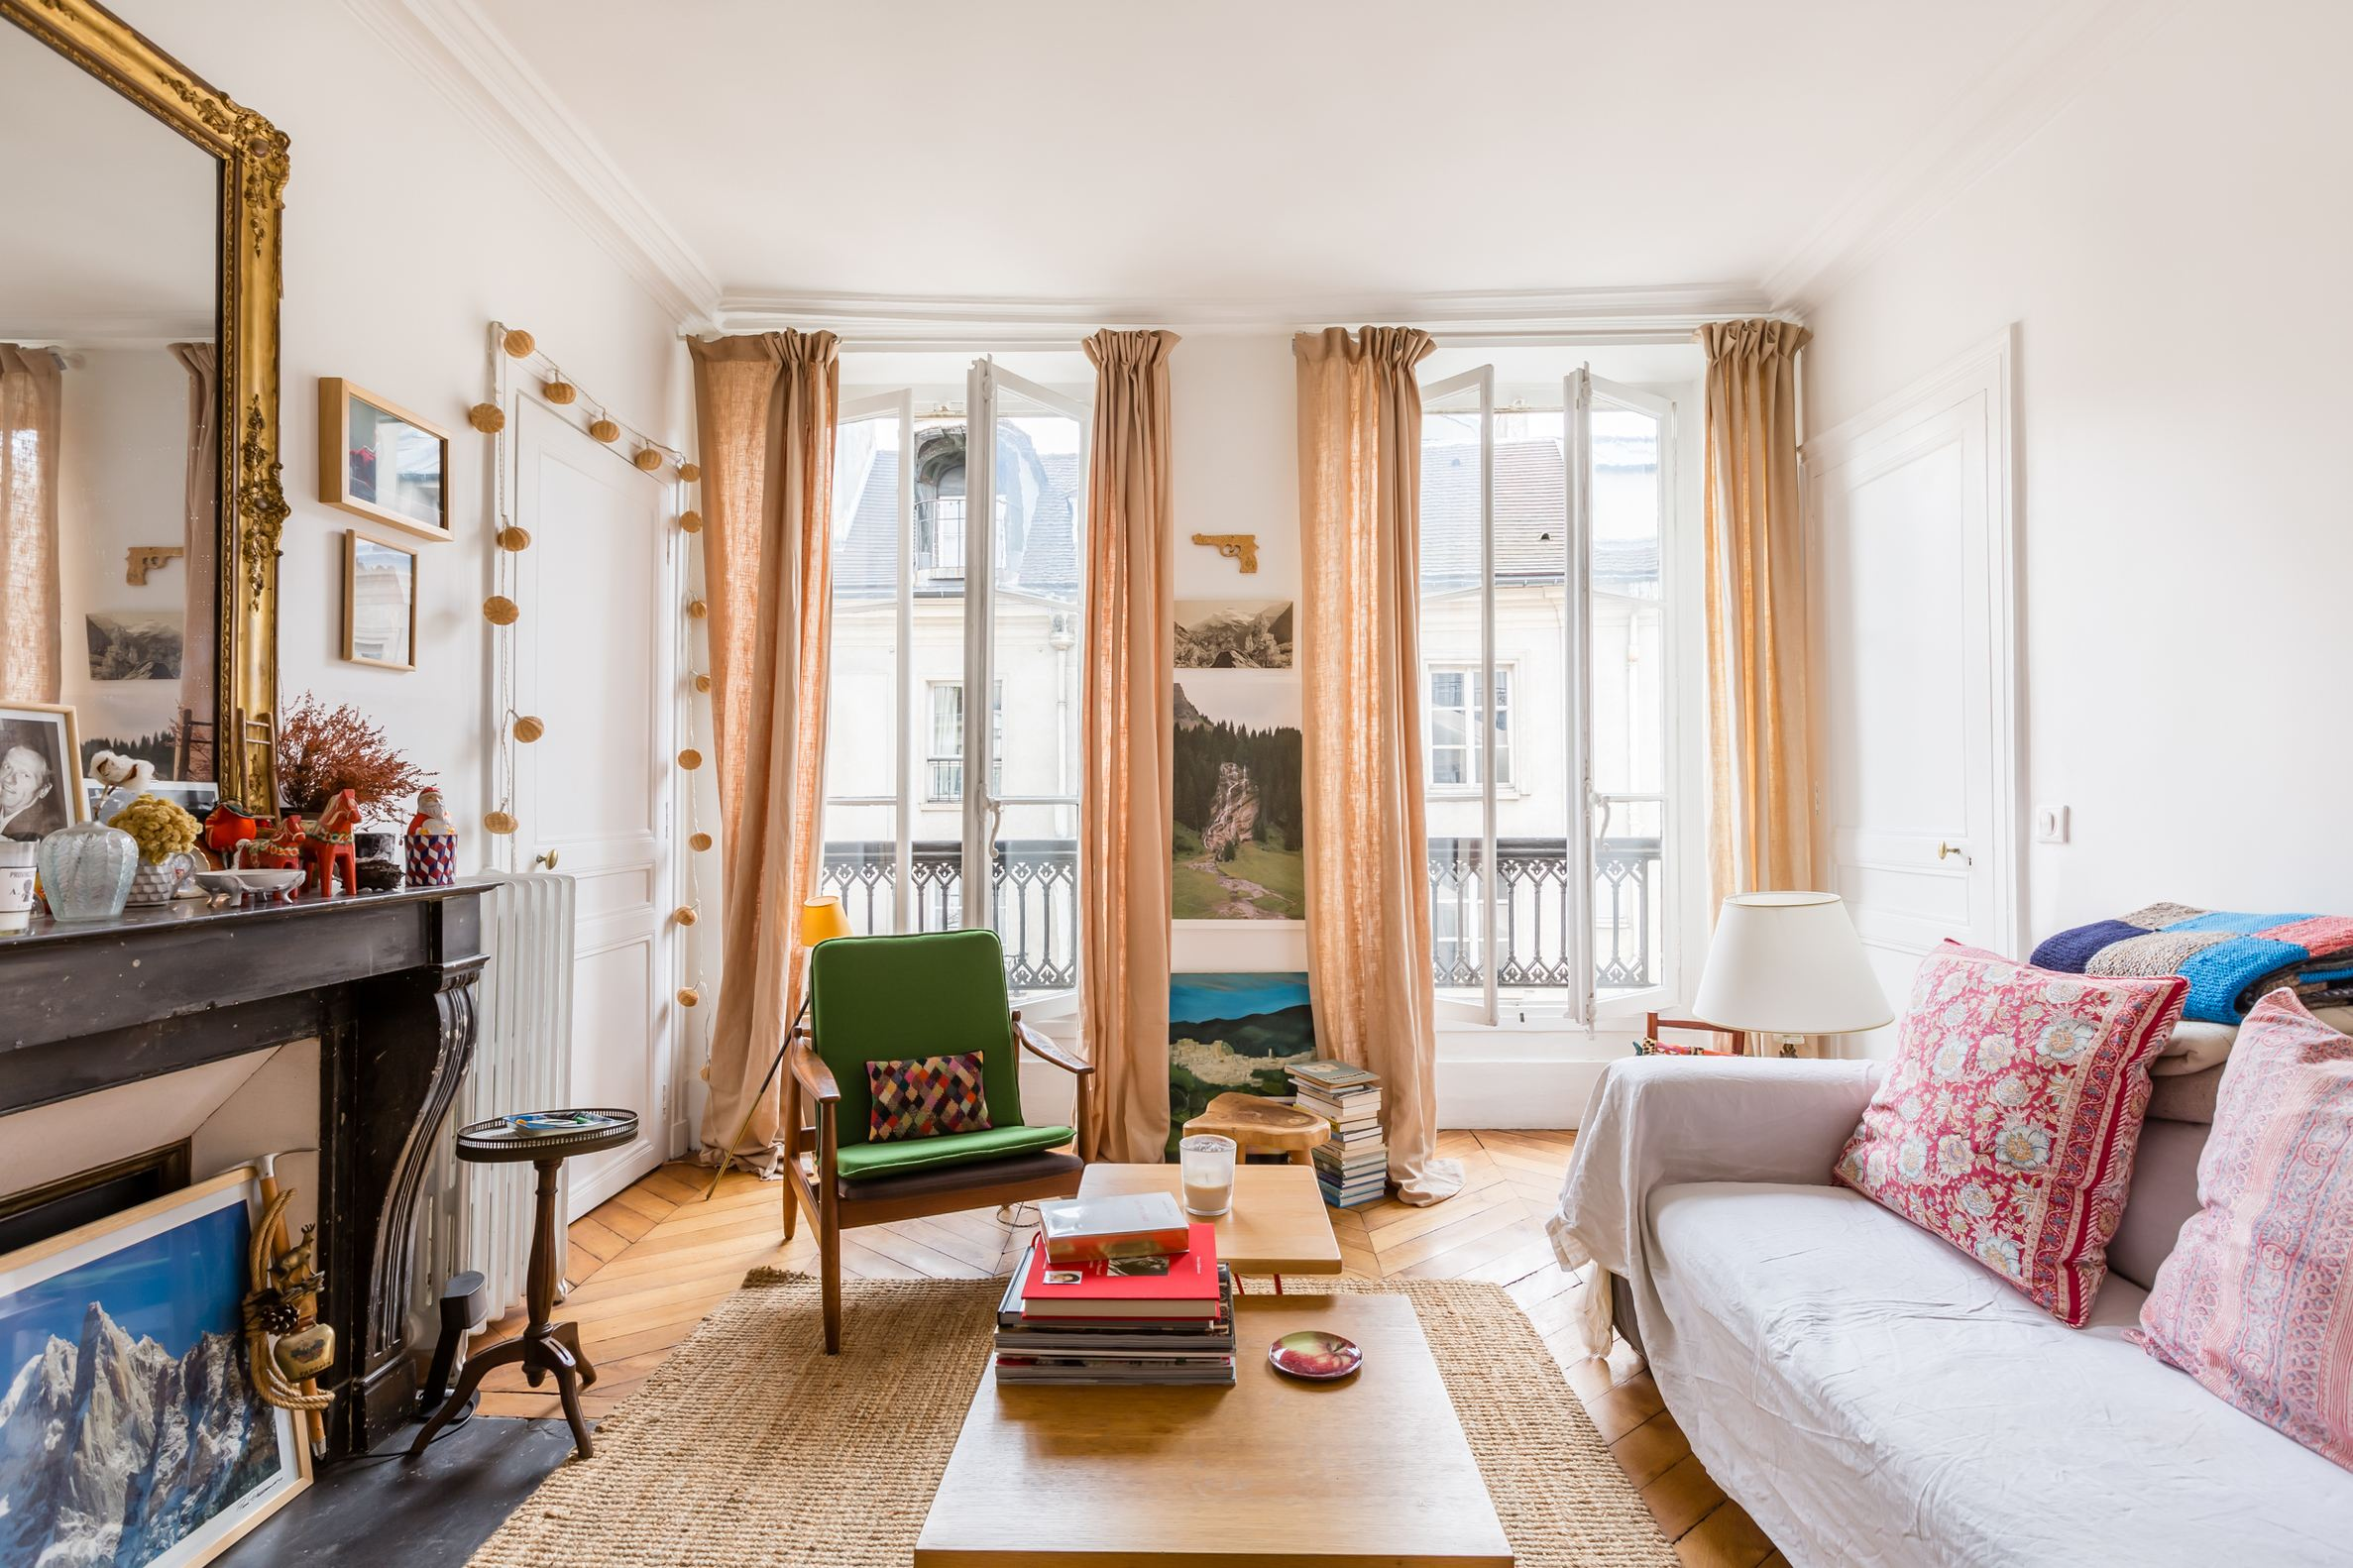 Property For Sale at Sole agent - Saint-Germain-des-Pres